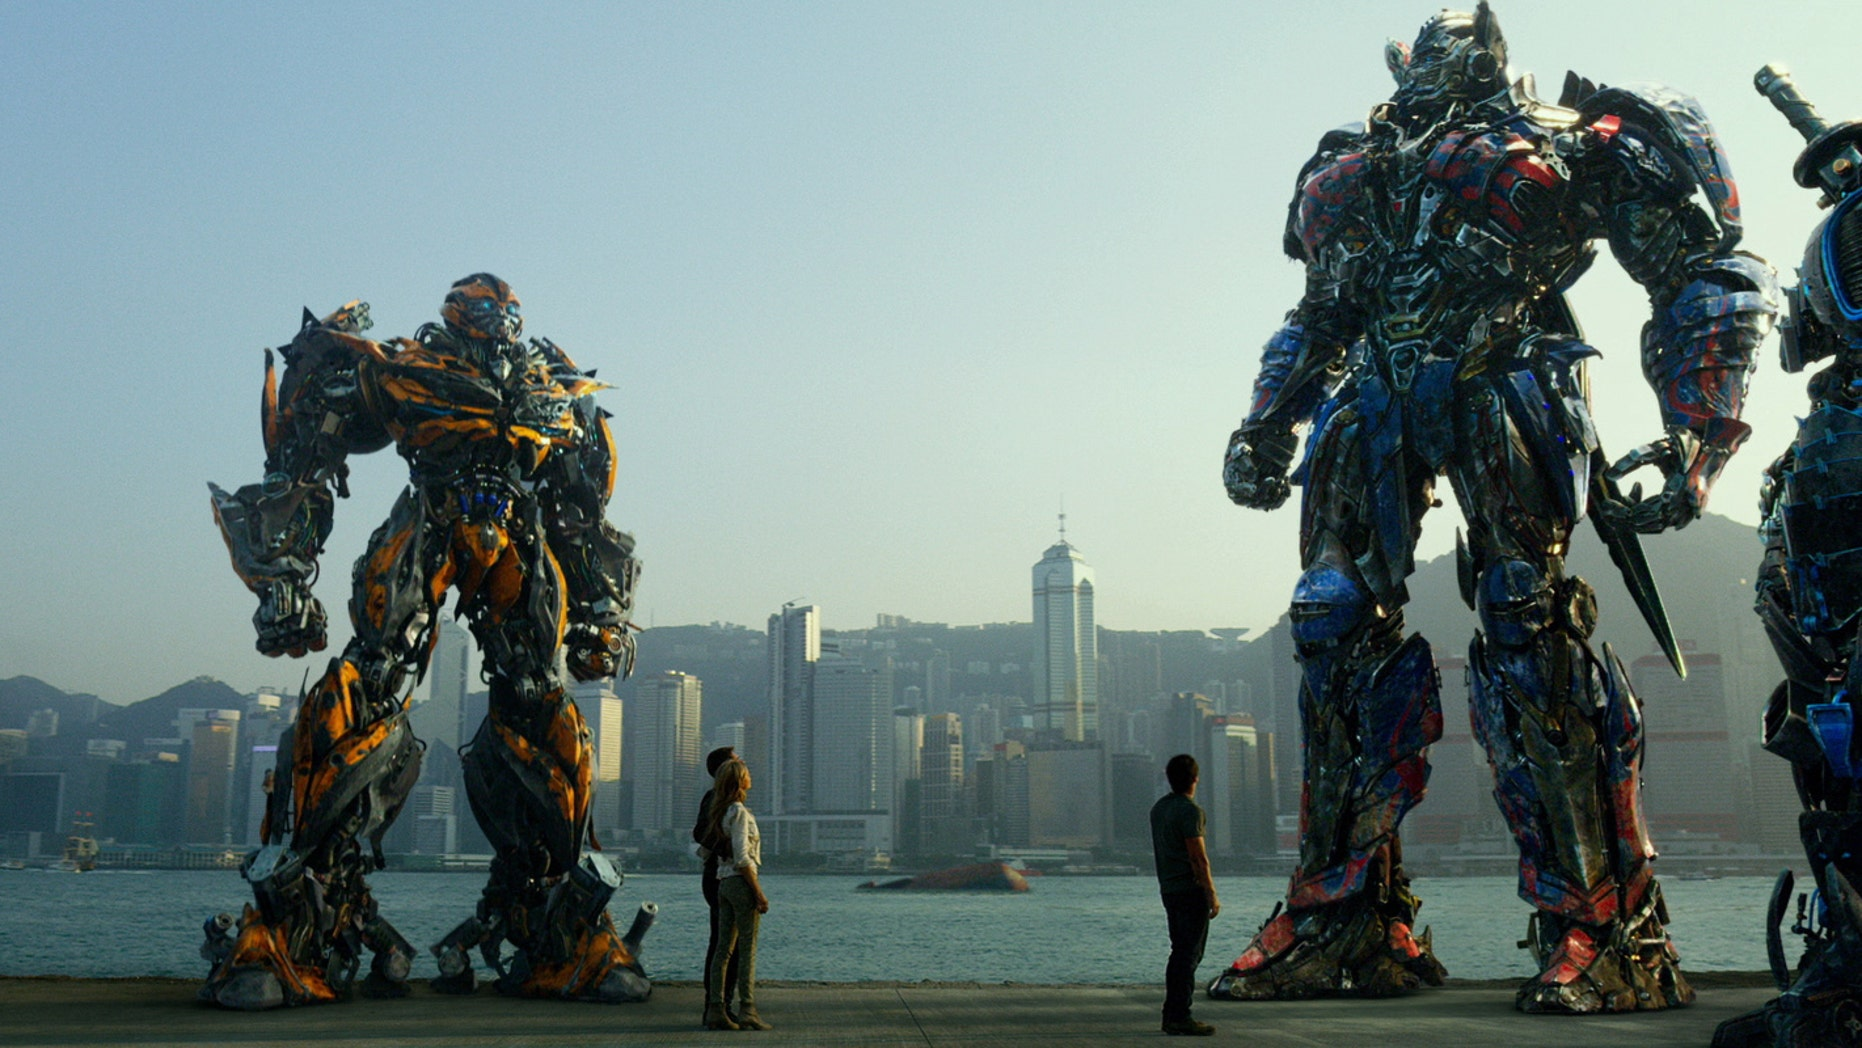 """Hound, Bingbing Li as Su Yueming, Stanley Tucci as Joshua Joyce, Bumblebee, Jack Reynor as Shane Dyson, Nicola Peltz as Tessa Yeager, Mark Wahlberg as Cade Yeager, Optimus Prime, Drift, and Crosshairs, in a scene from the film, """"Transformers: Age of Extinction."""""""